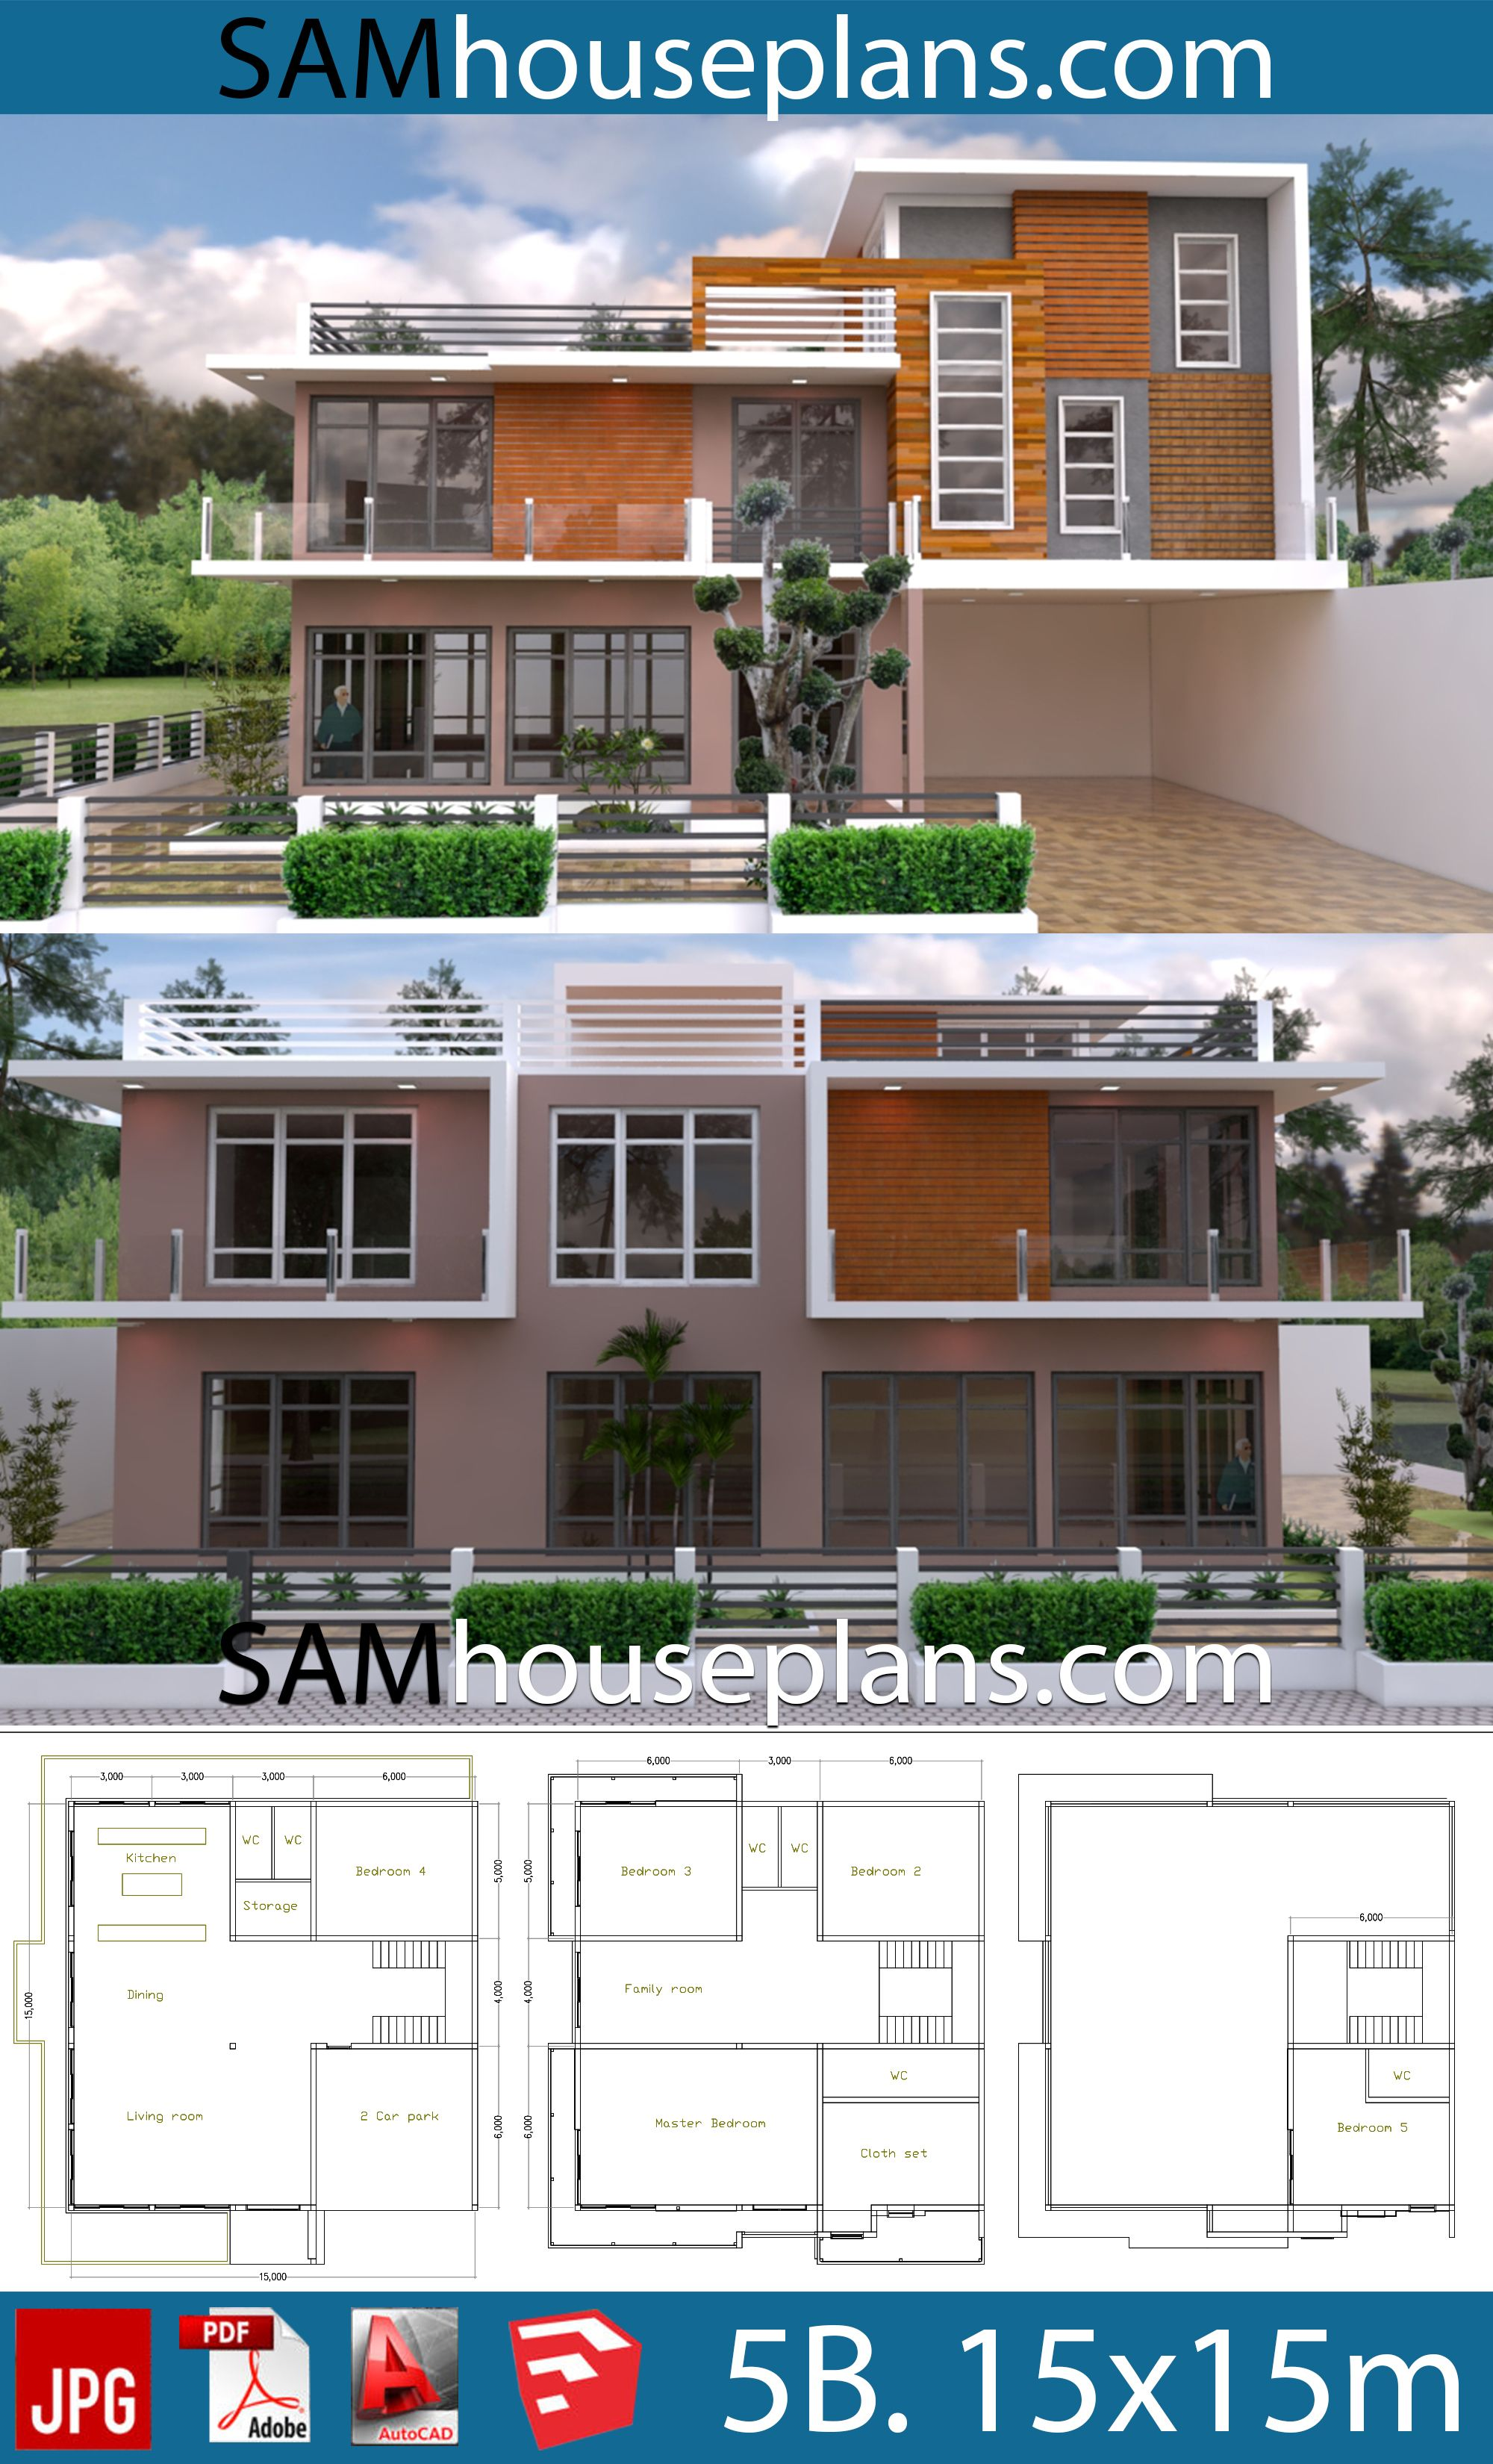 House Plans 15x15 With 5 Bedrooms House Plans Free Downloads House Plans House Layout Plans Small House Design Plans